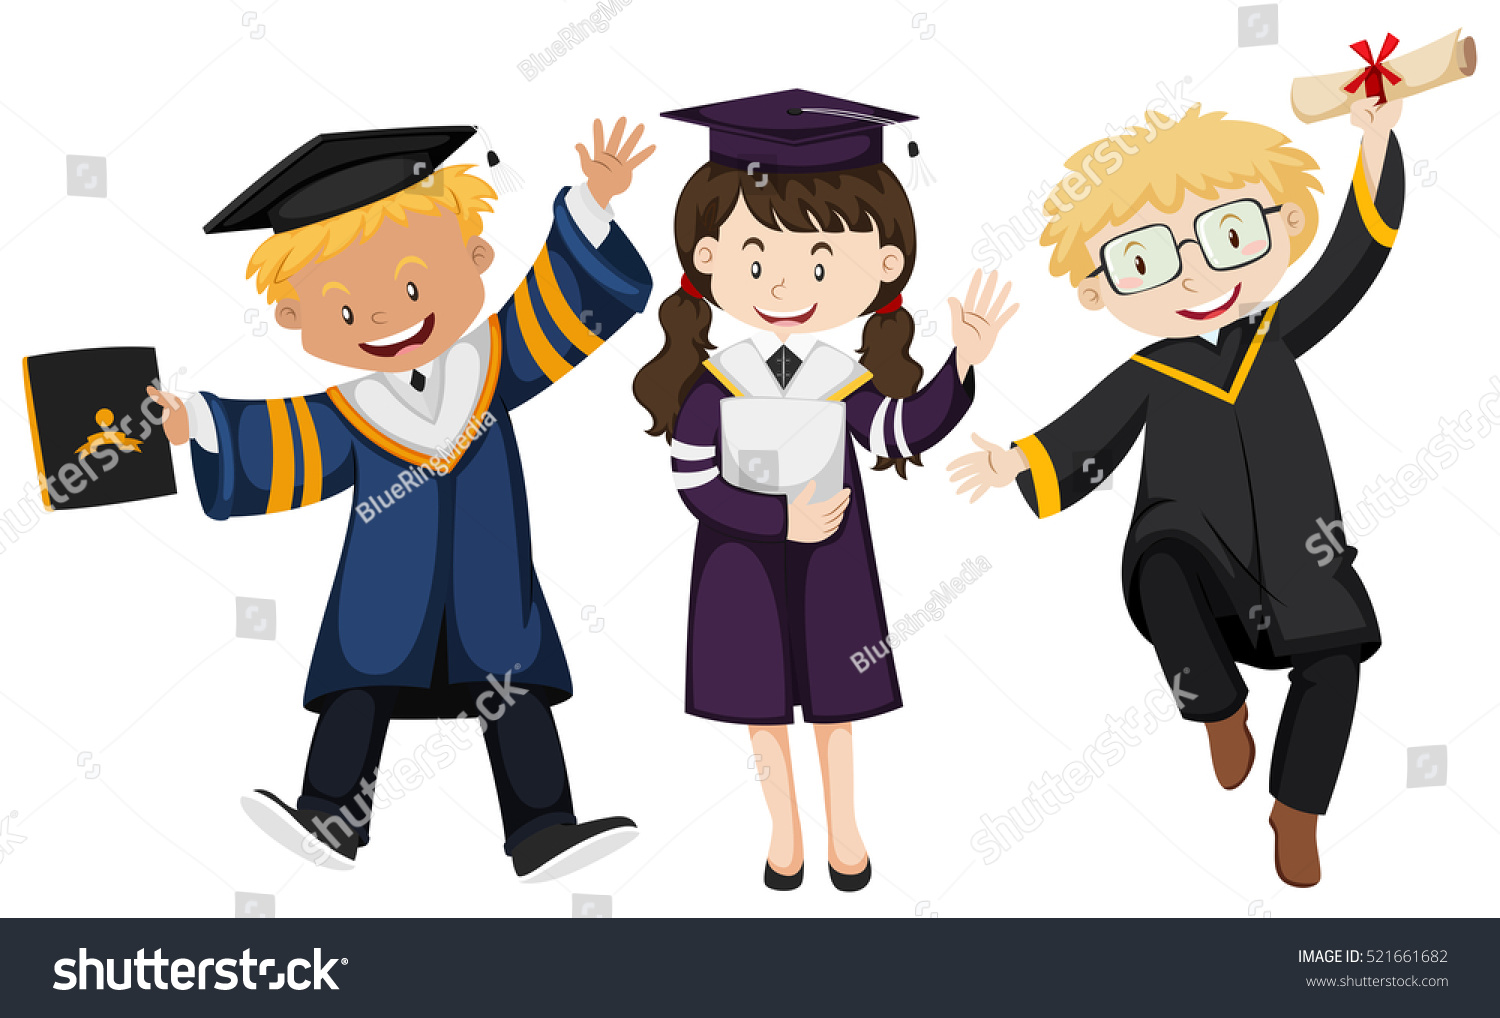 Three People Graduation Gown Illustration Stock Vector (Royalty Free ...